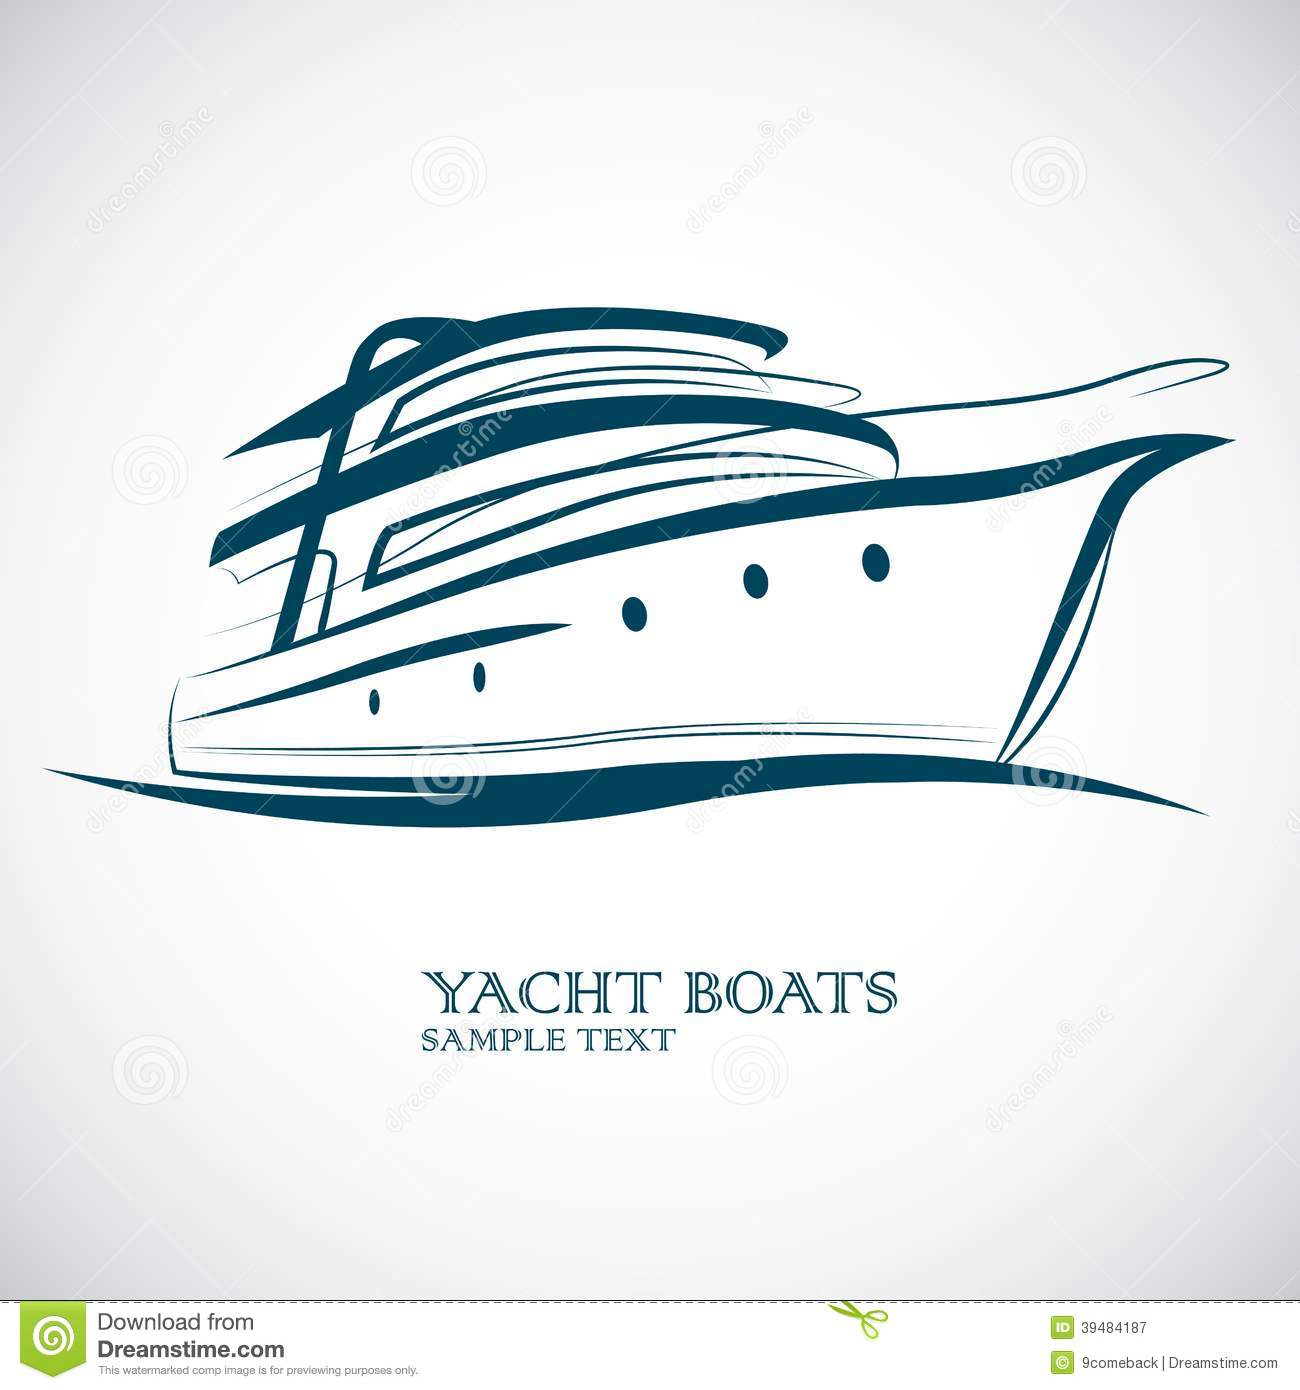 Yacht Boat Stock Vector - Image: 39484187